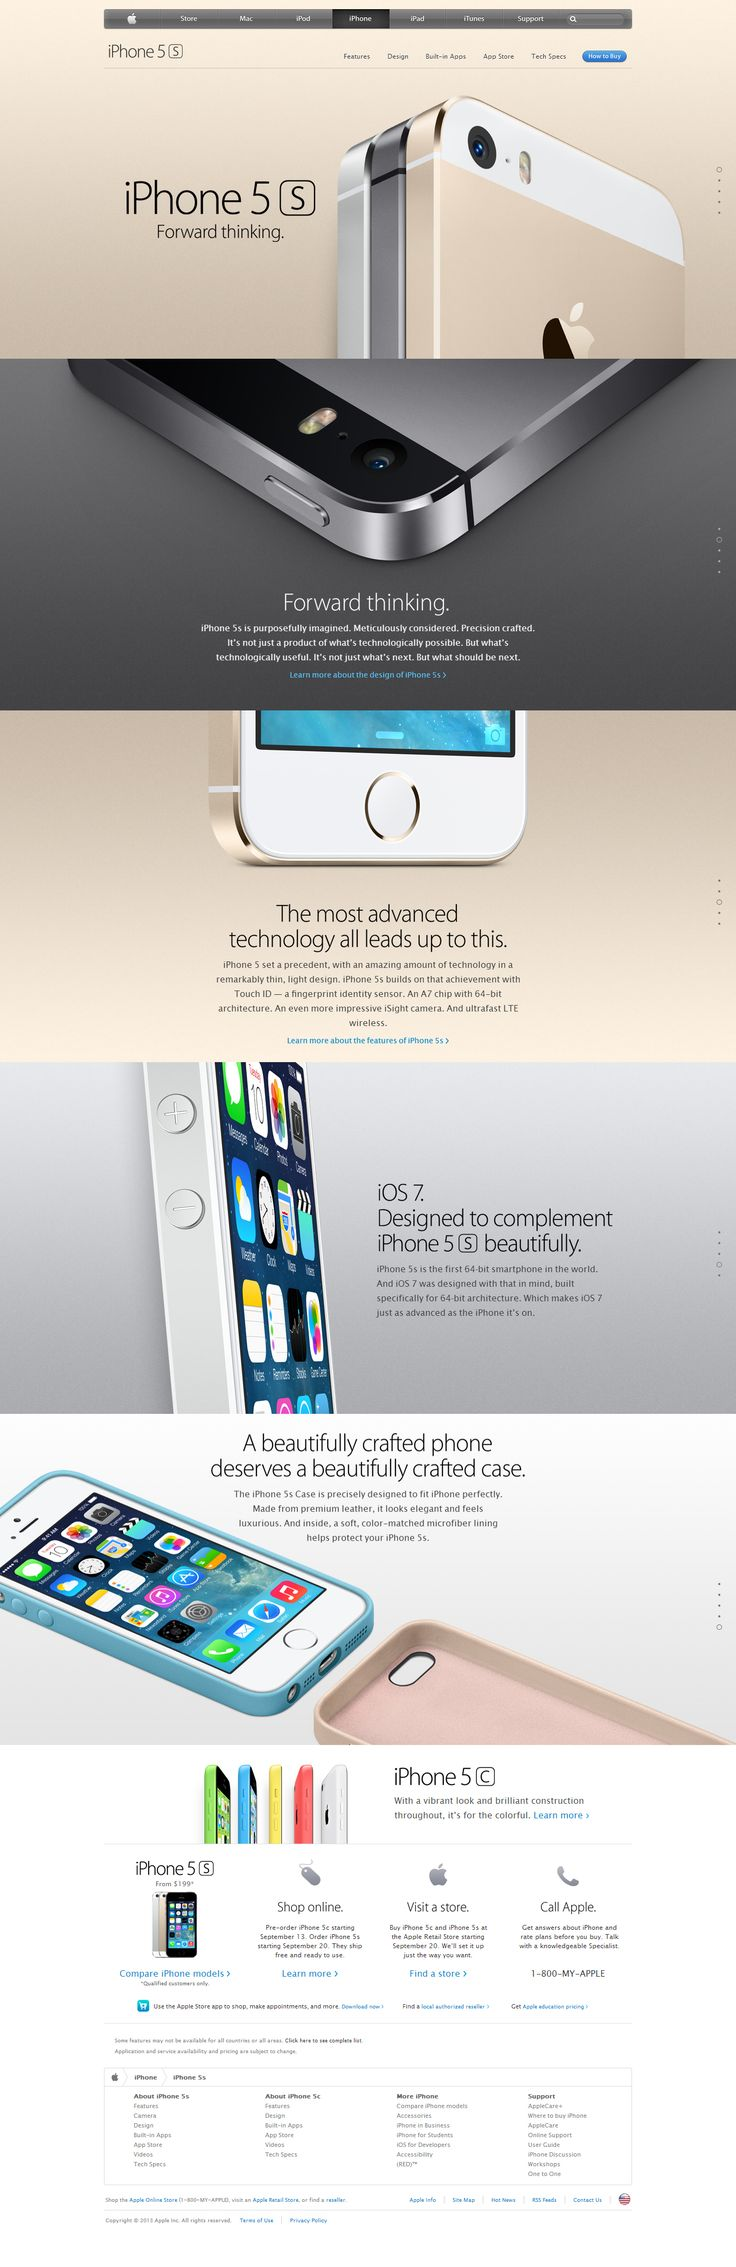 Saw the web design for this as per usual apple blows it out of the water with their marketing tactics and design. #iphone5s #iphone5c #teamiphone